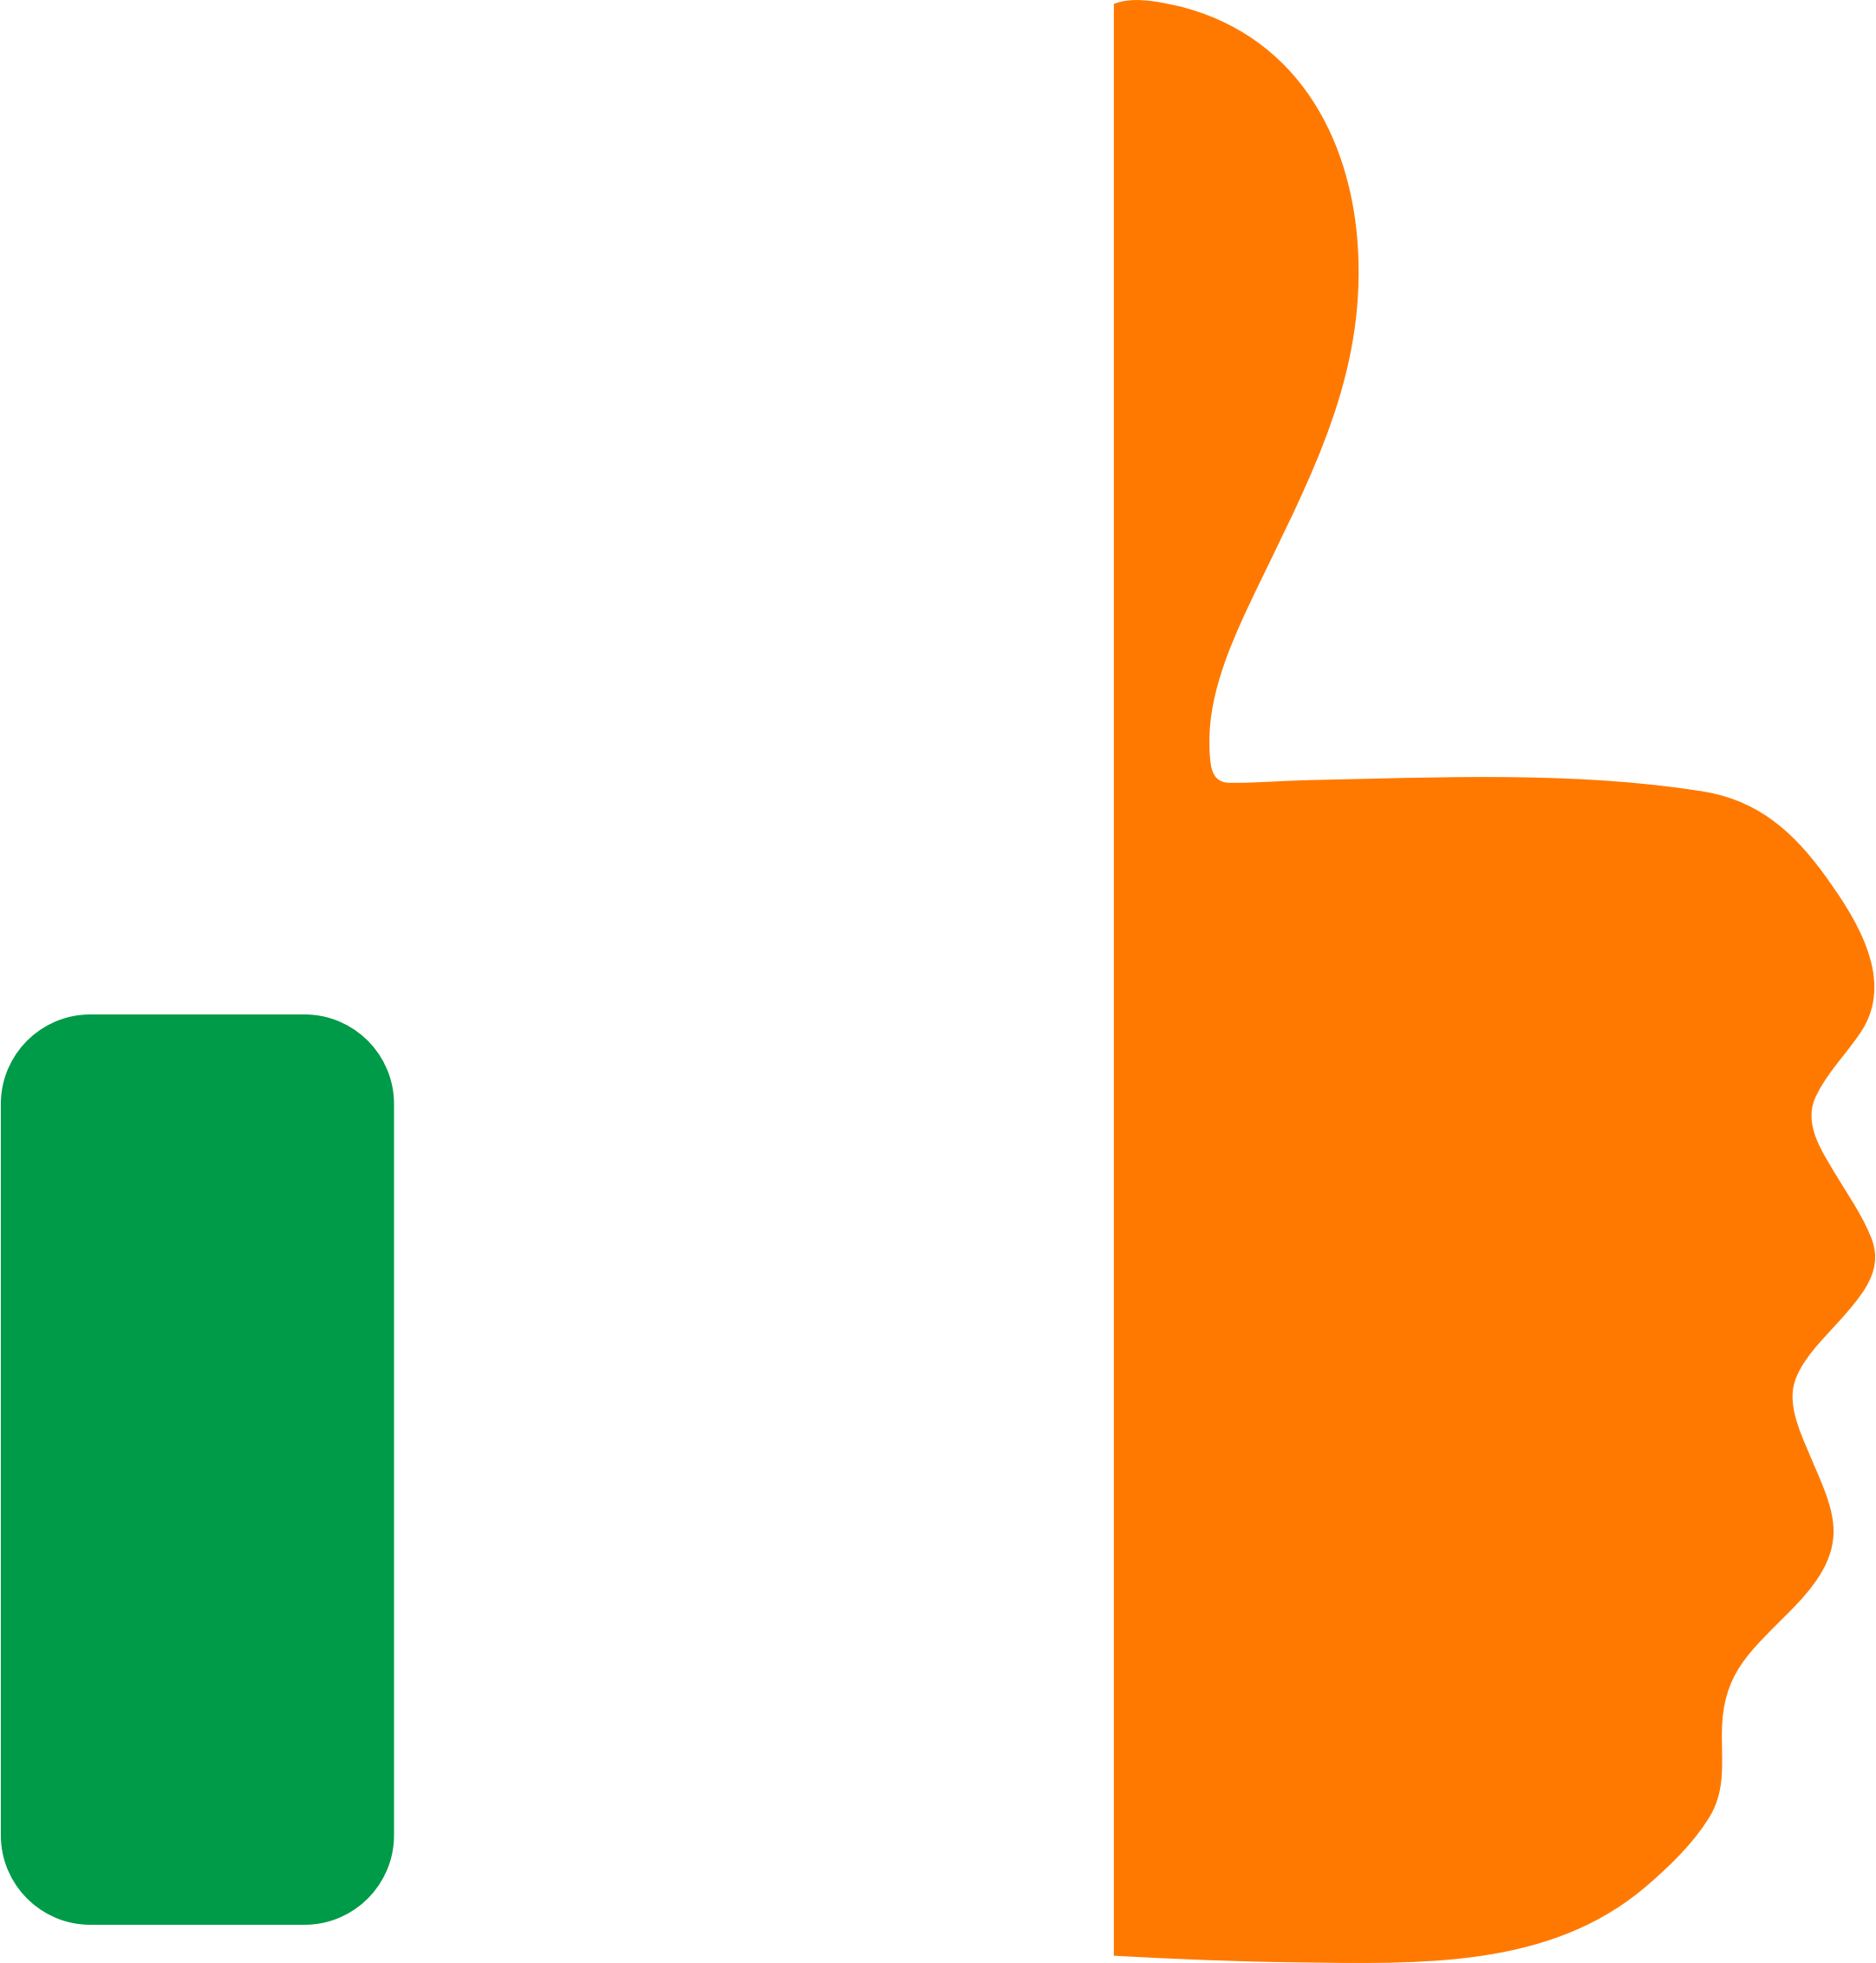 Thumbs Up Ireland by GDJ